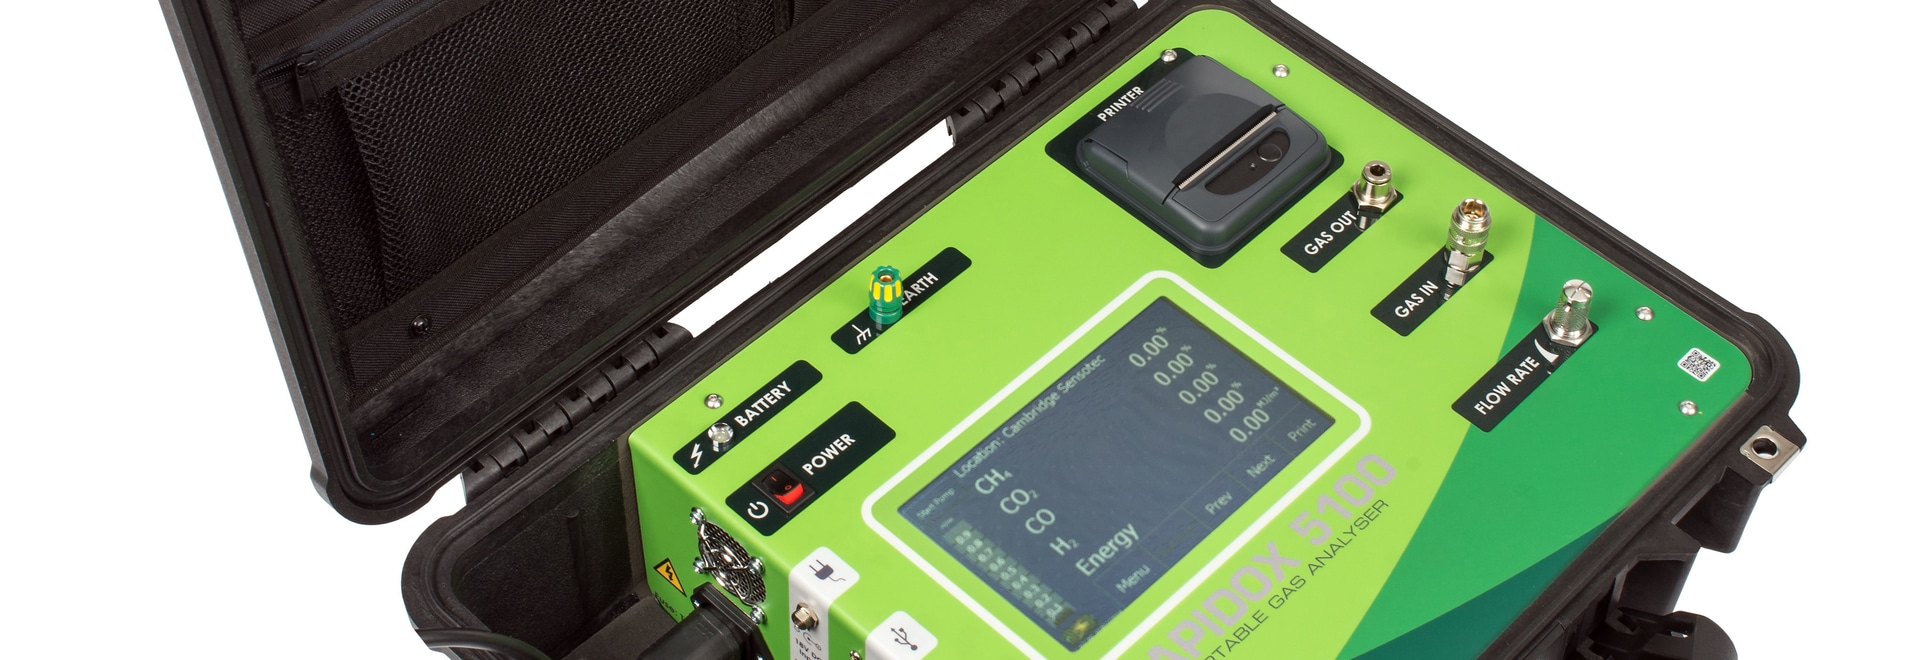 Give your gas analysis requirements the 'green light' – The Rapidox 5100 Portable Multigas Analyser